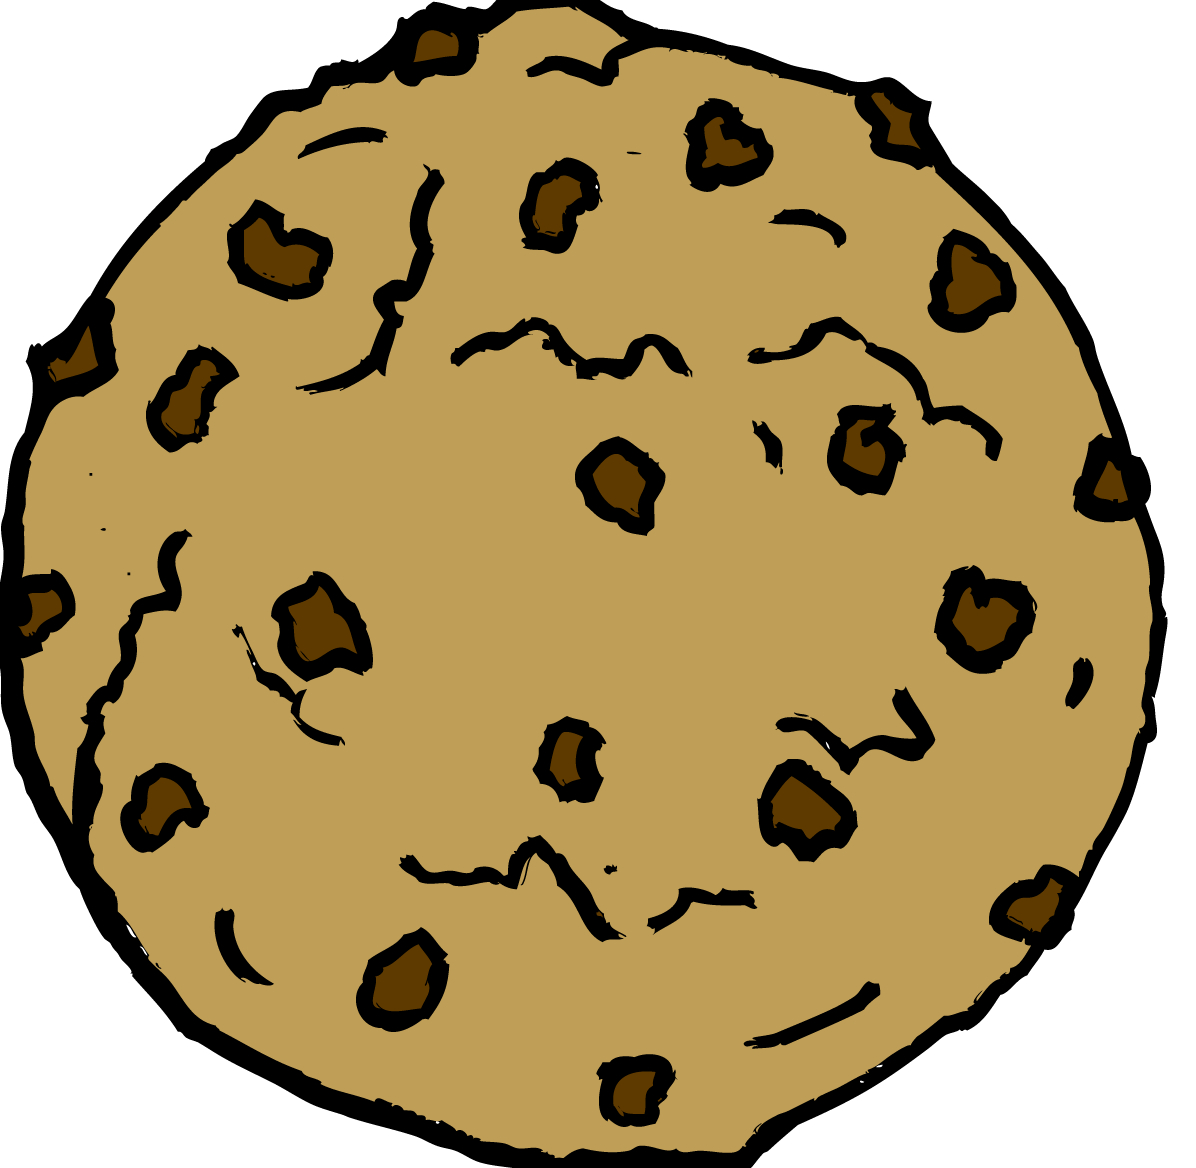 Cookie clipart. Chocolate chip cookies drawing